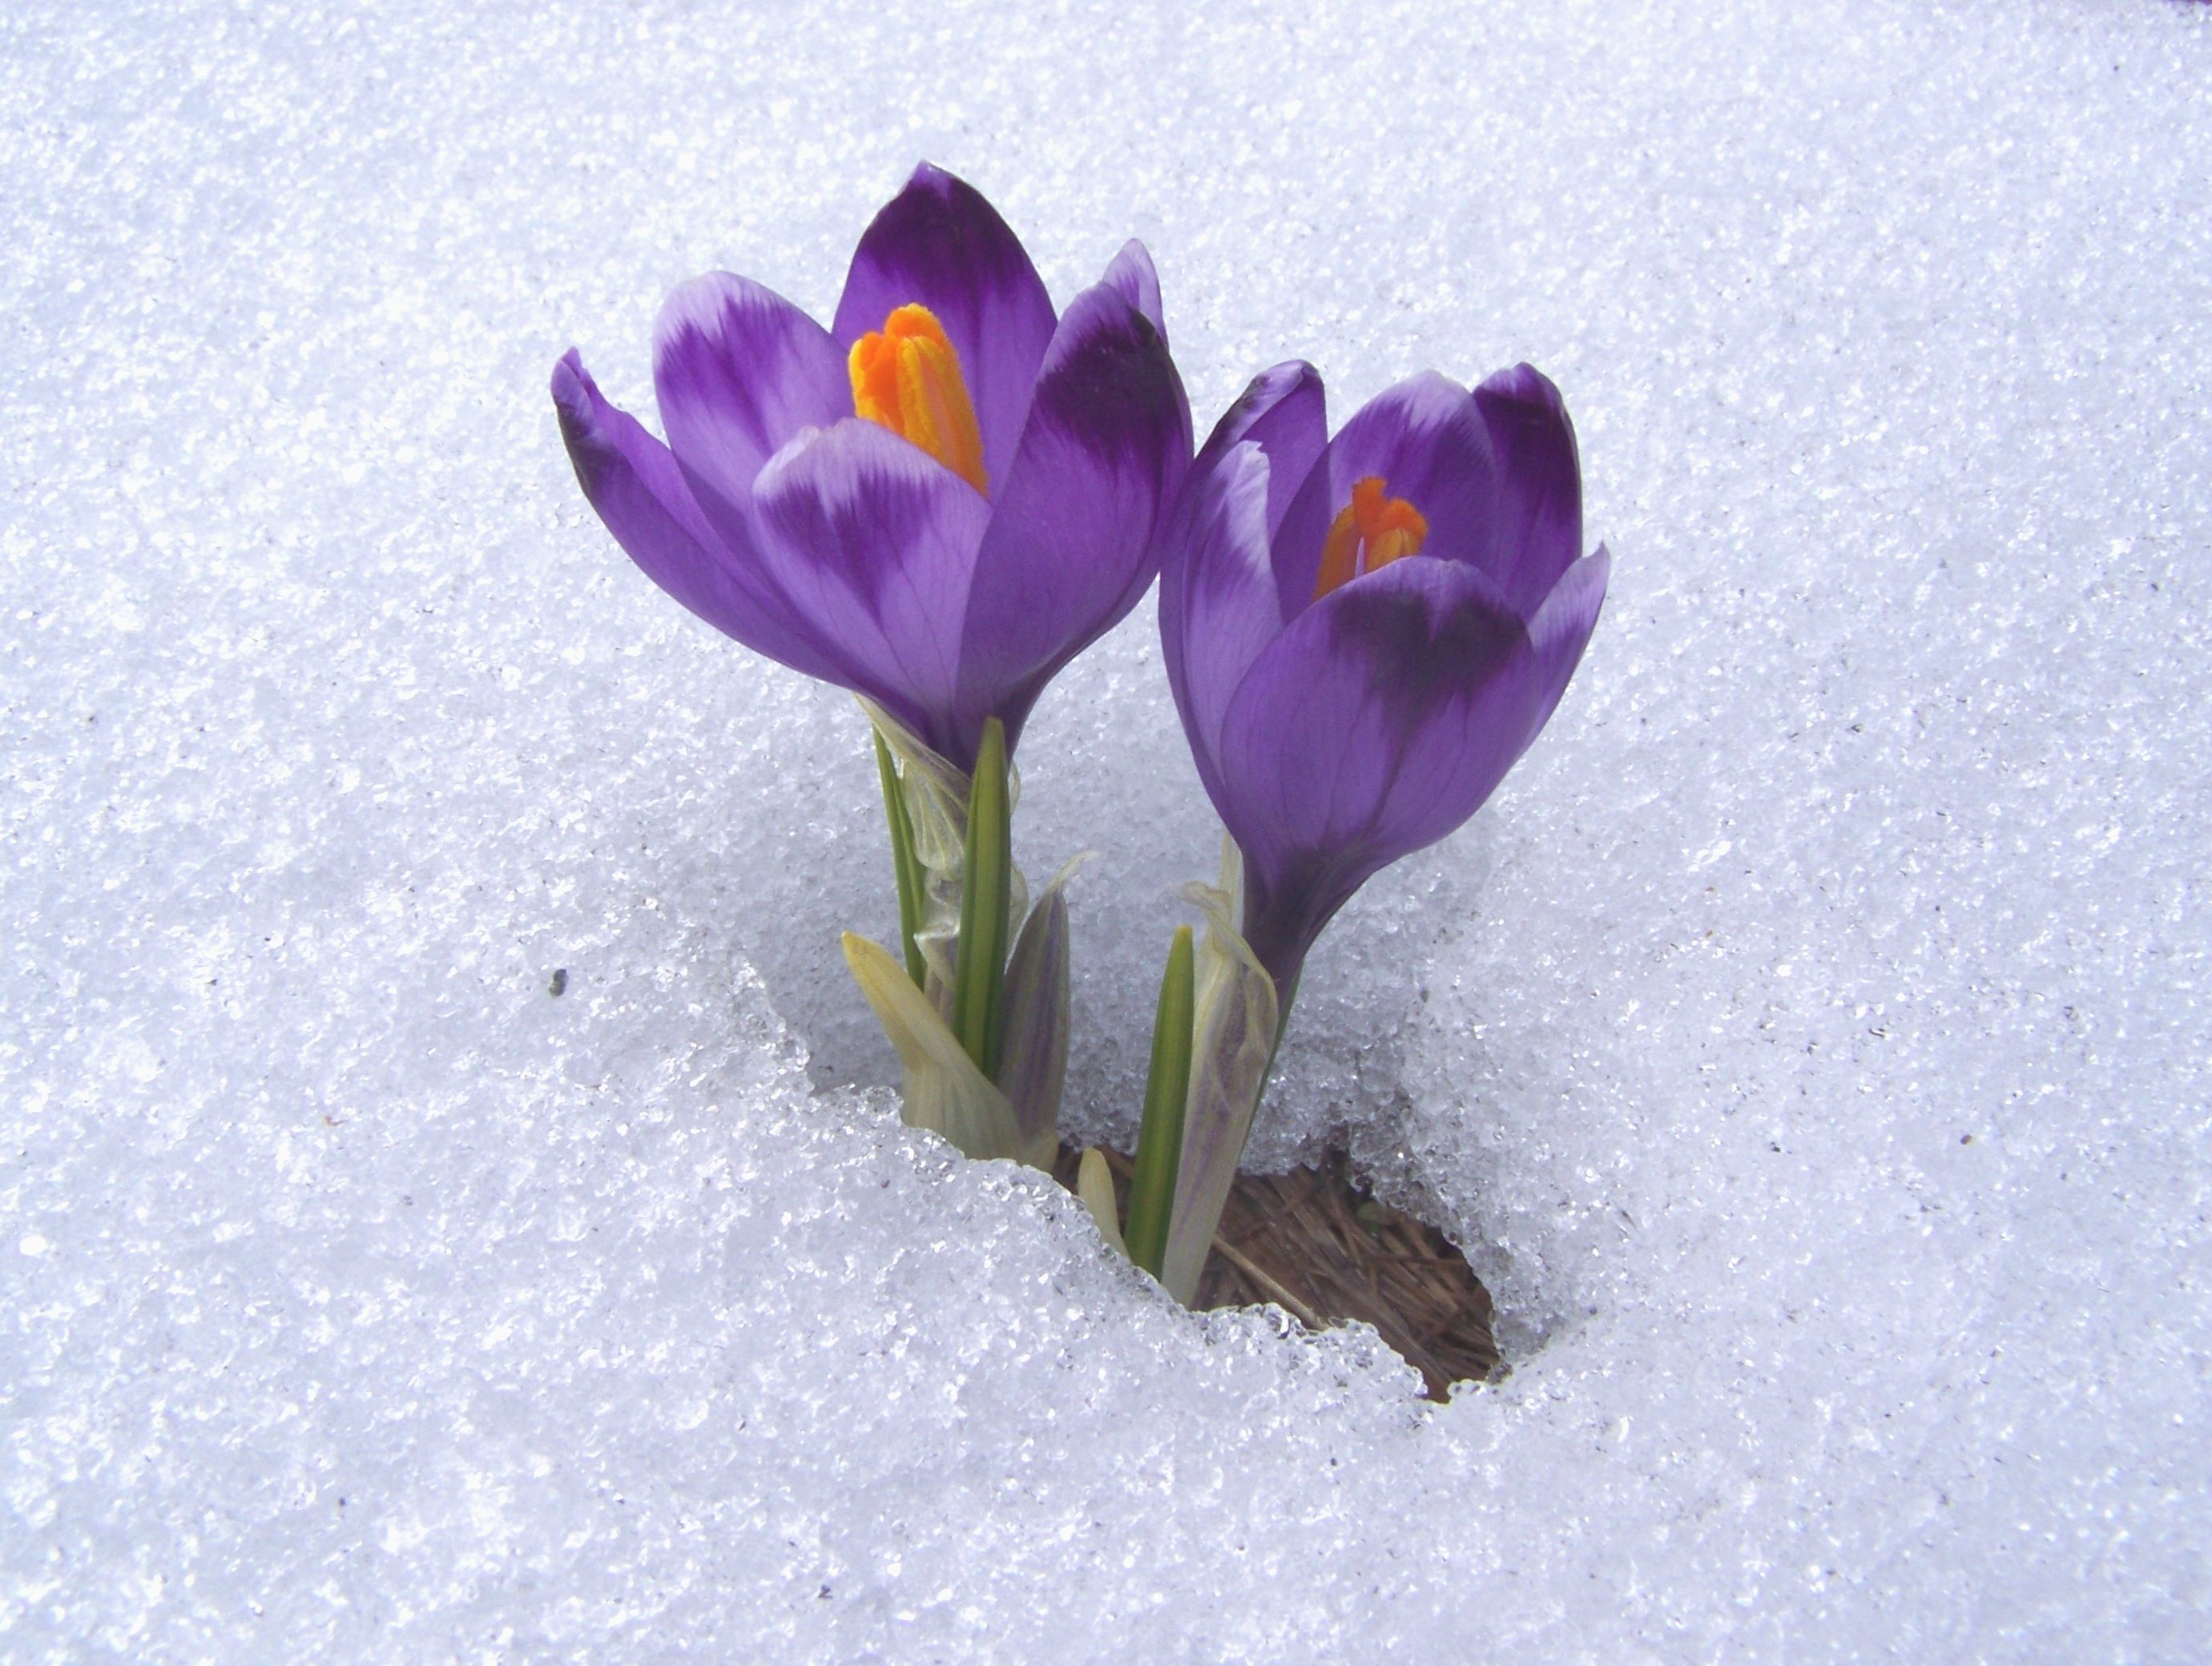 Image result for images of flower coming up in snow